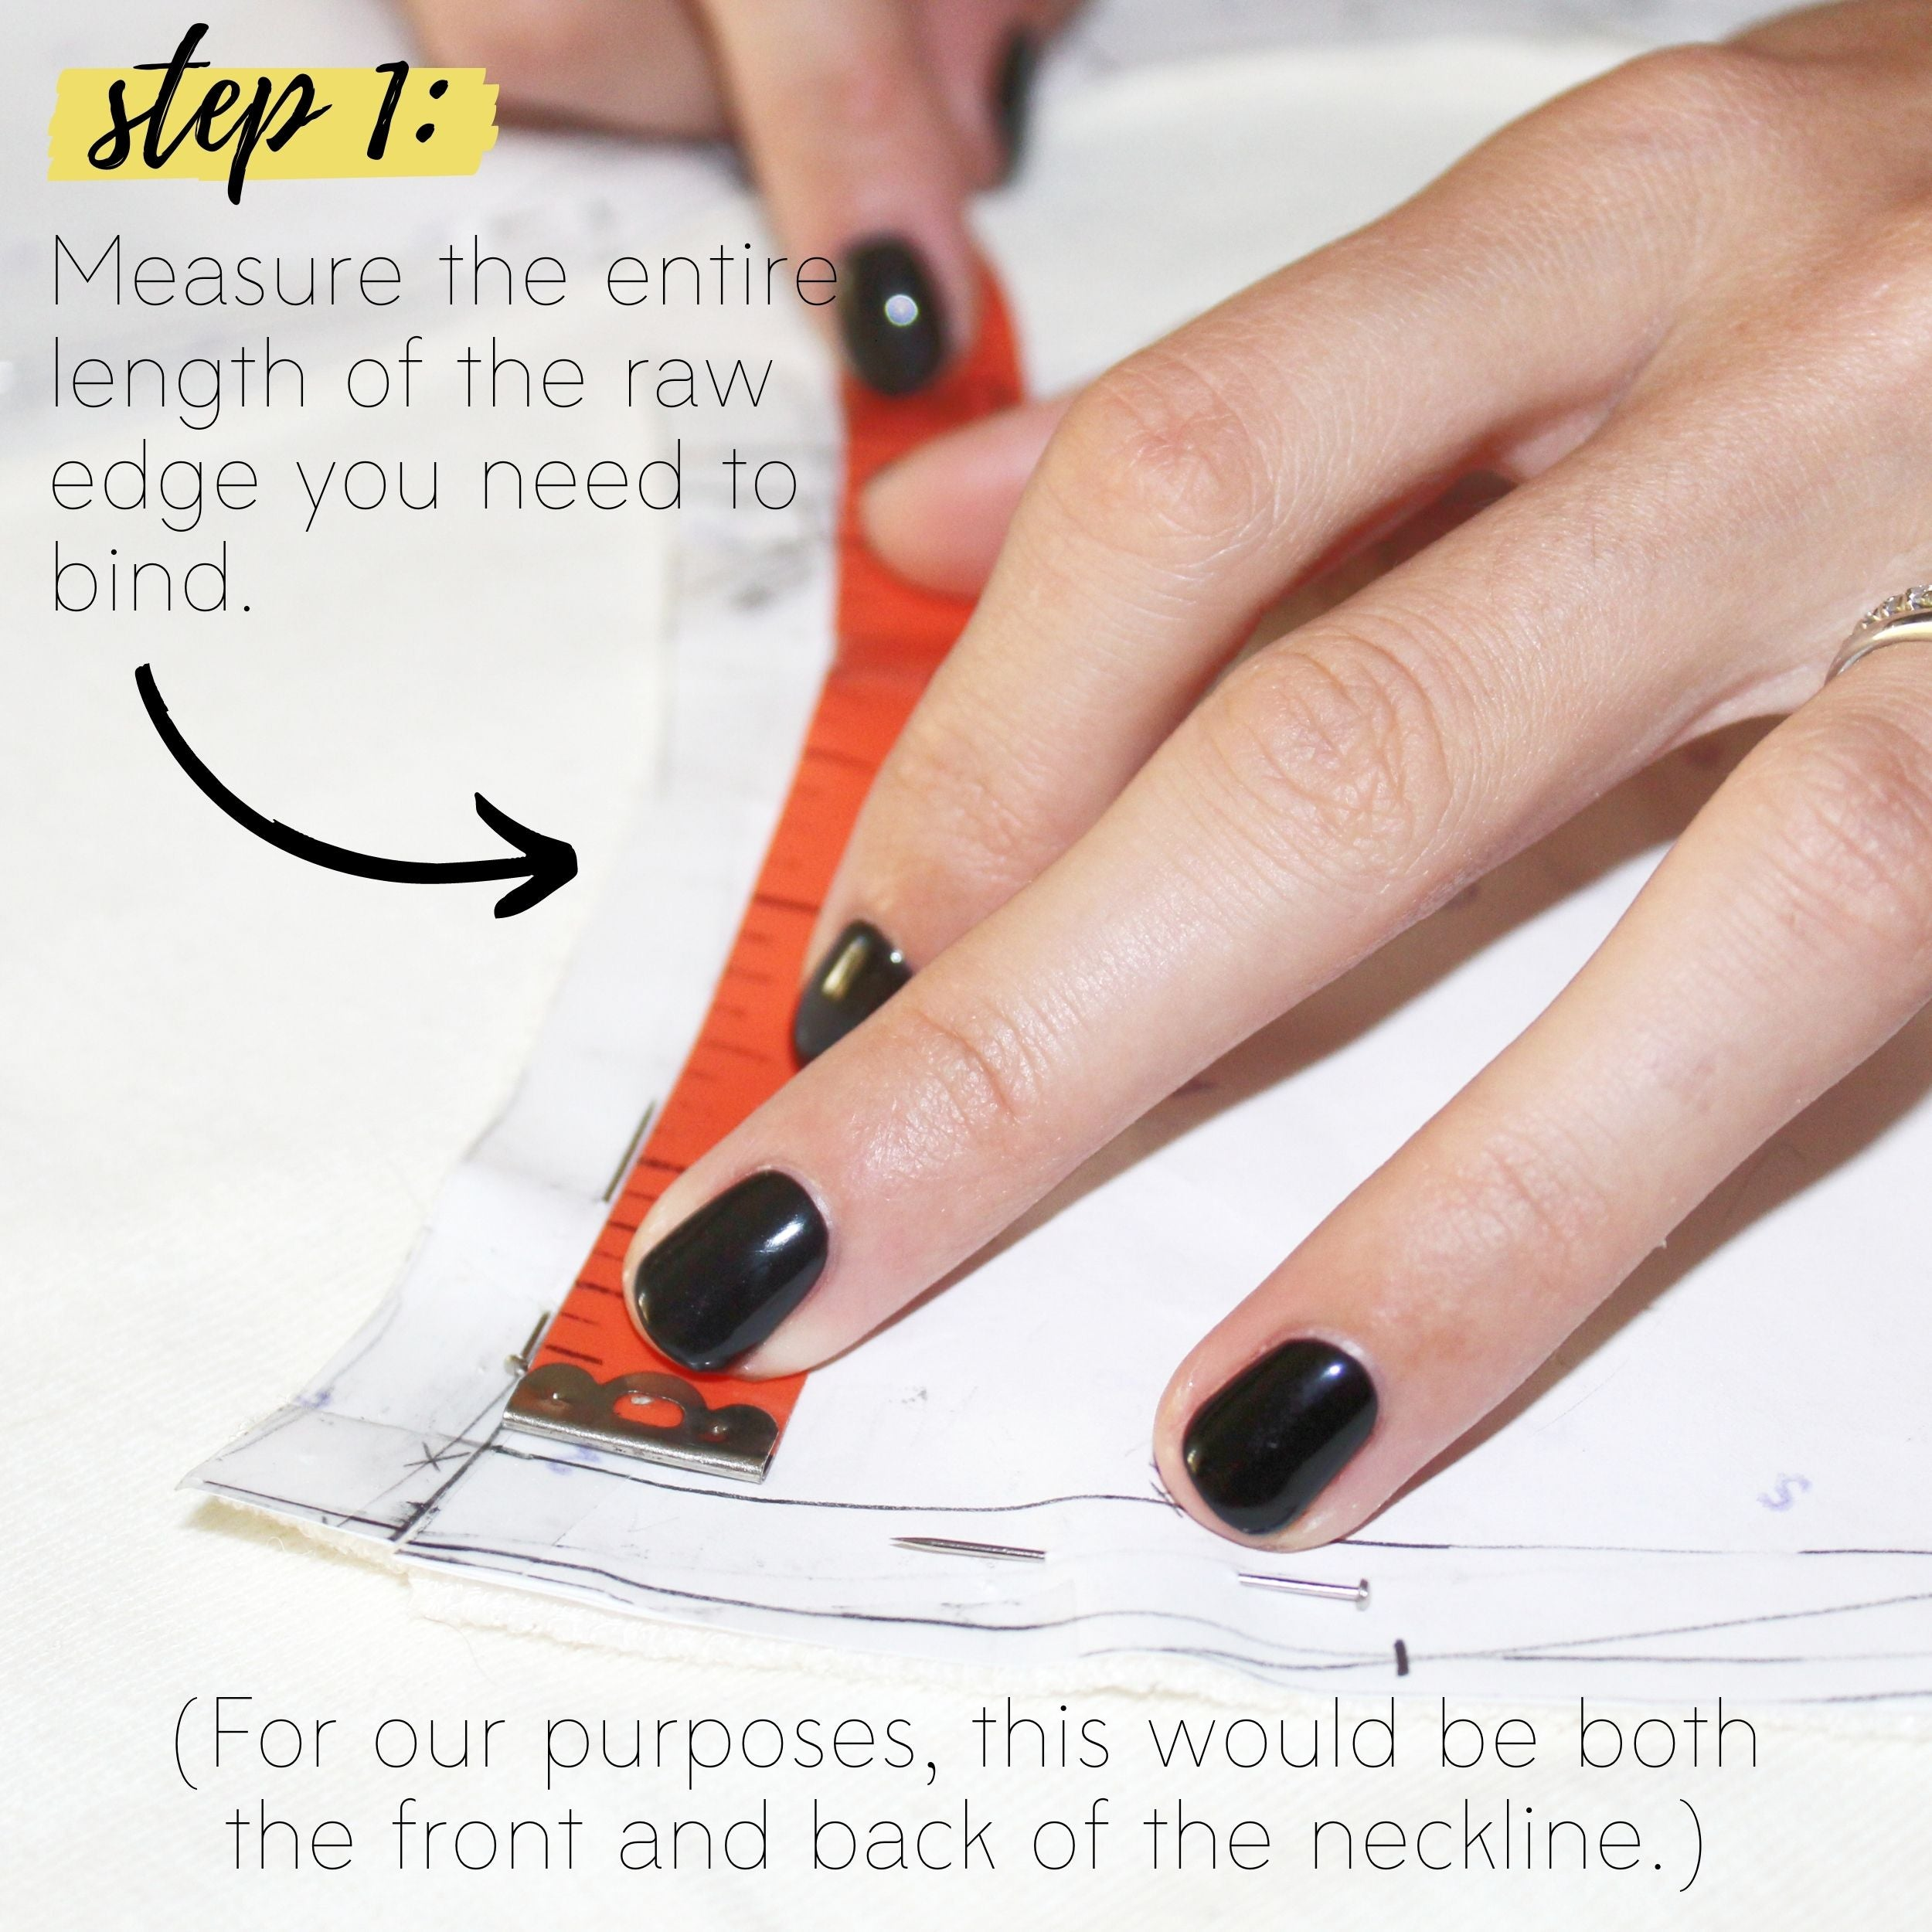 How To Sew A Knit Seam Binding Sewing Tutorial: Step 1